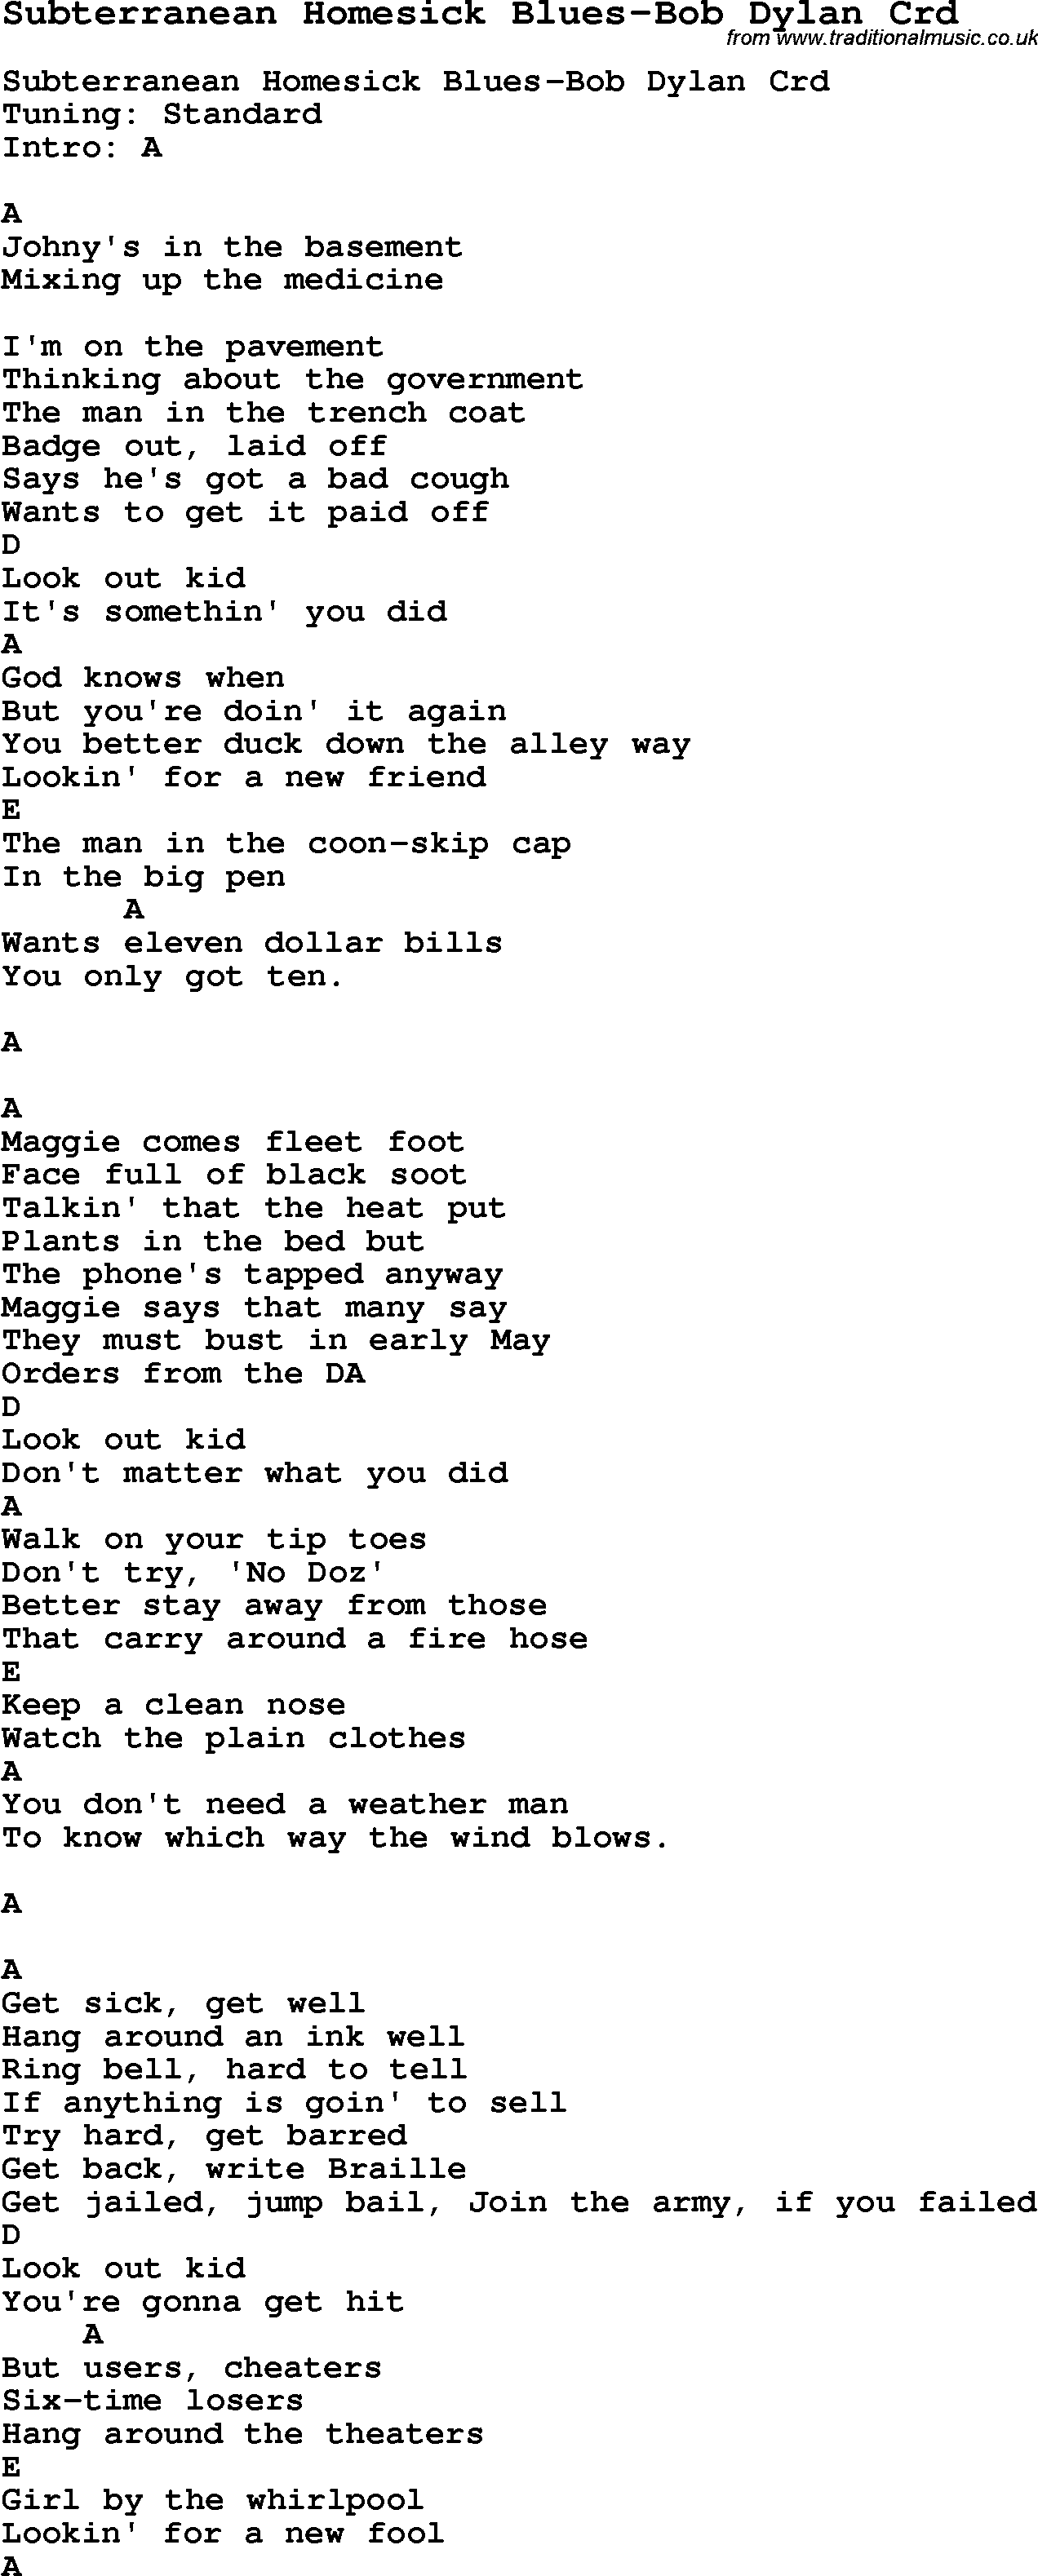 Skiffle lyrics for subterranean homesick blues bob dylan with skiffle song lyrics for subterranean homesick blues bob dylan with chords for mandolin ukulele hexwebz Choice Image